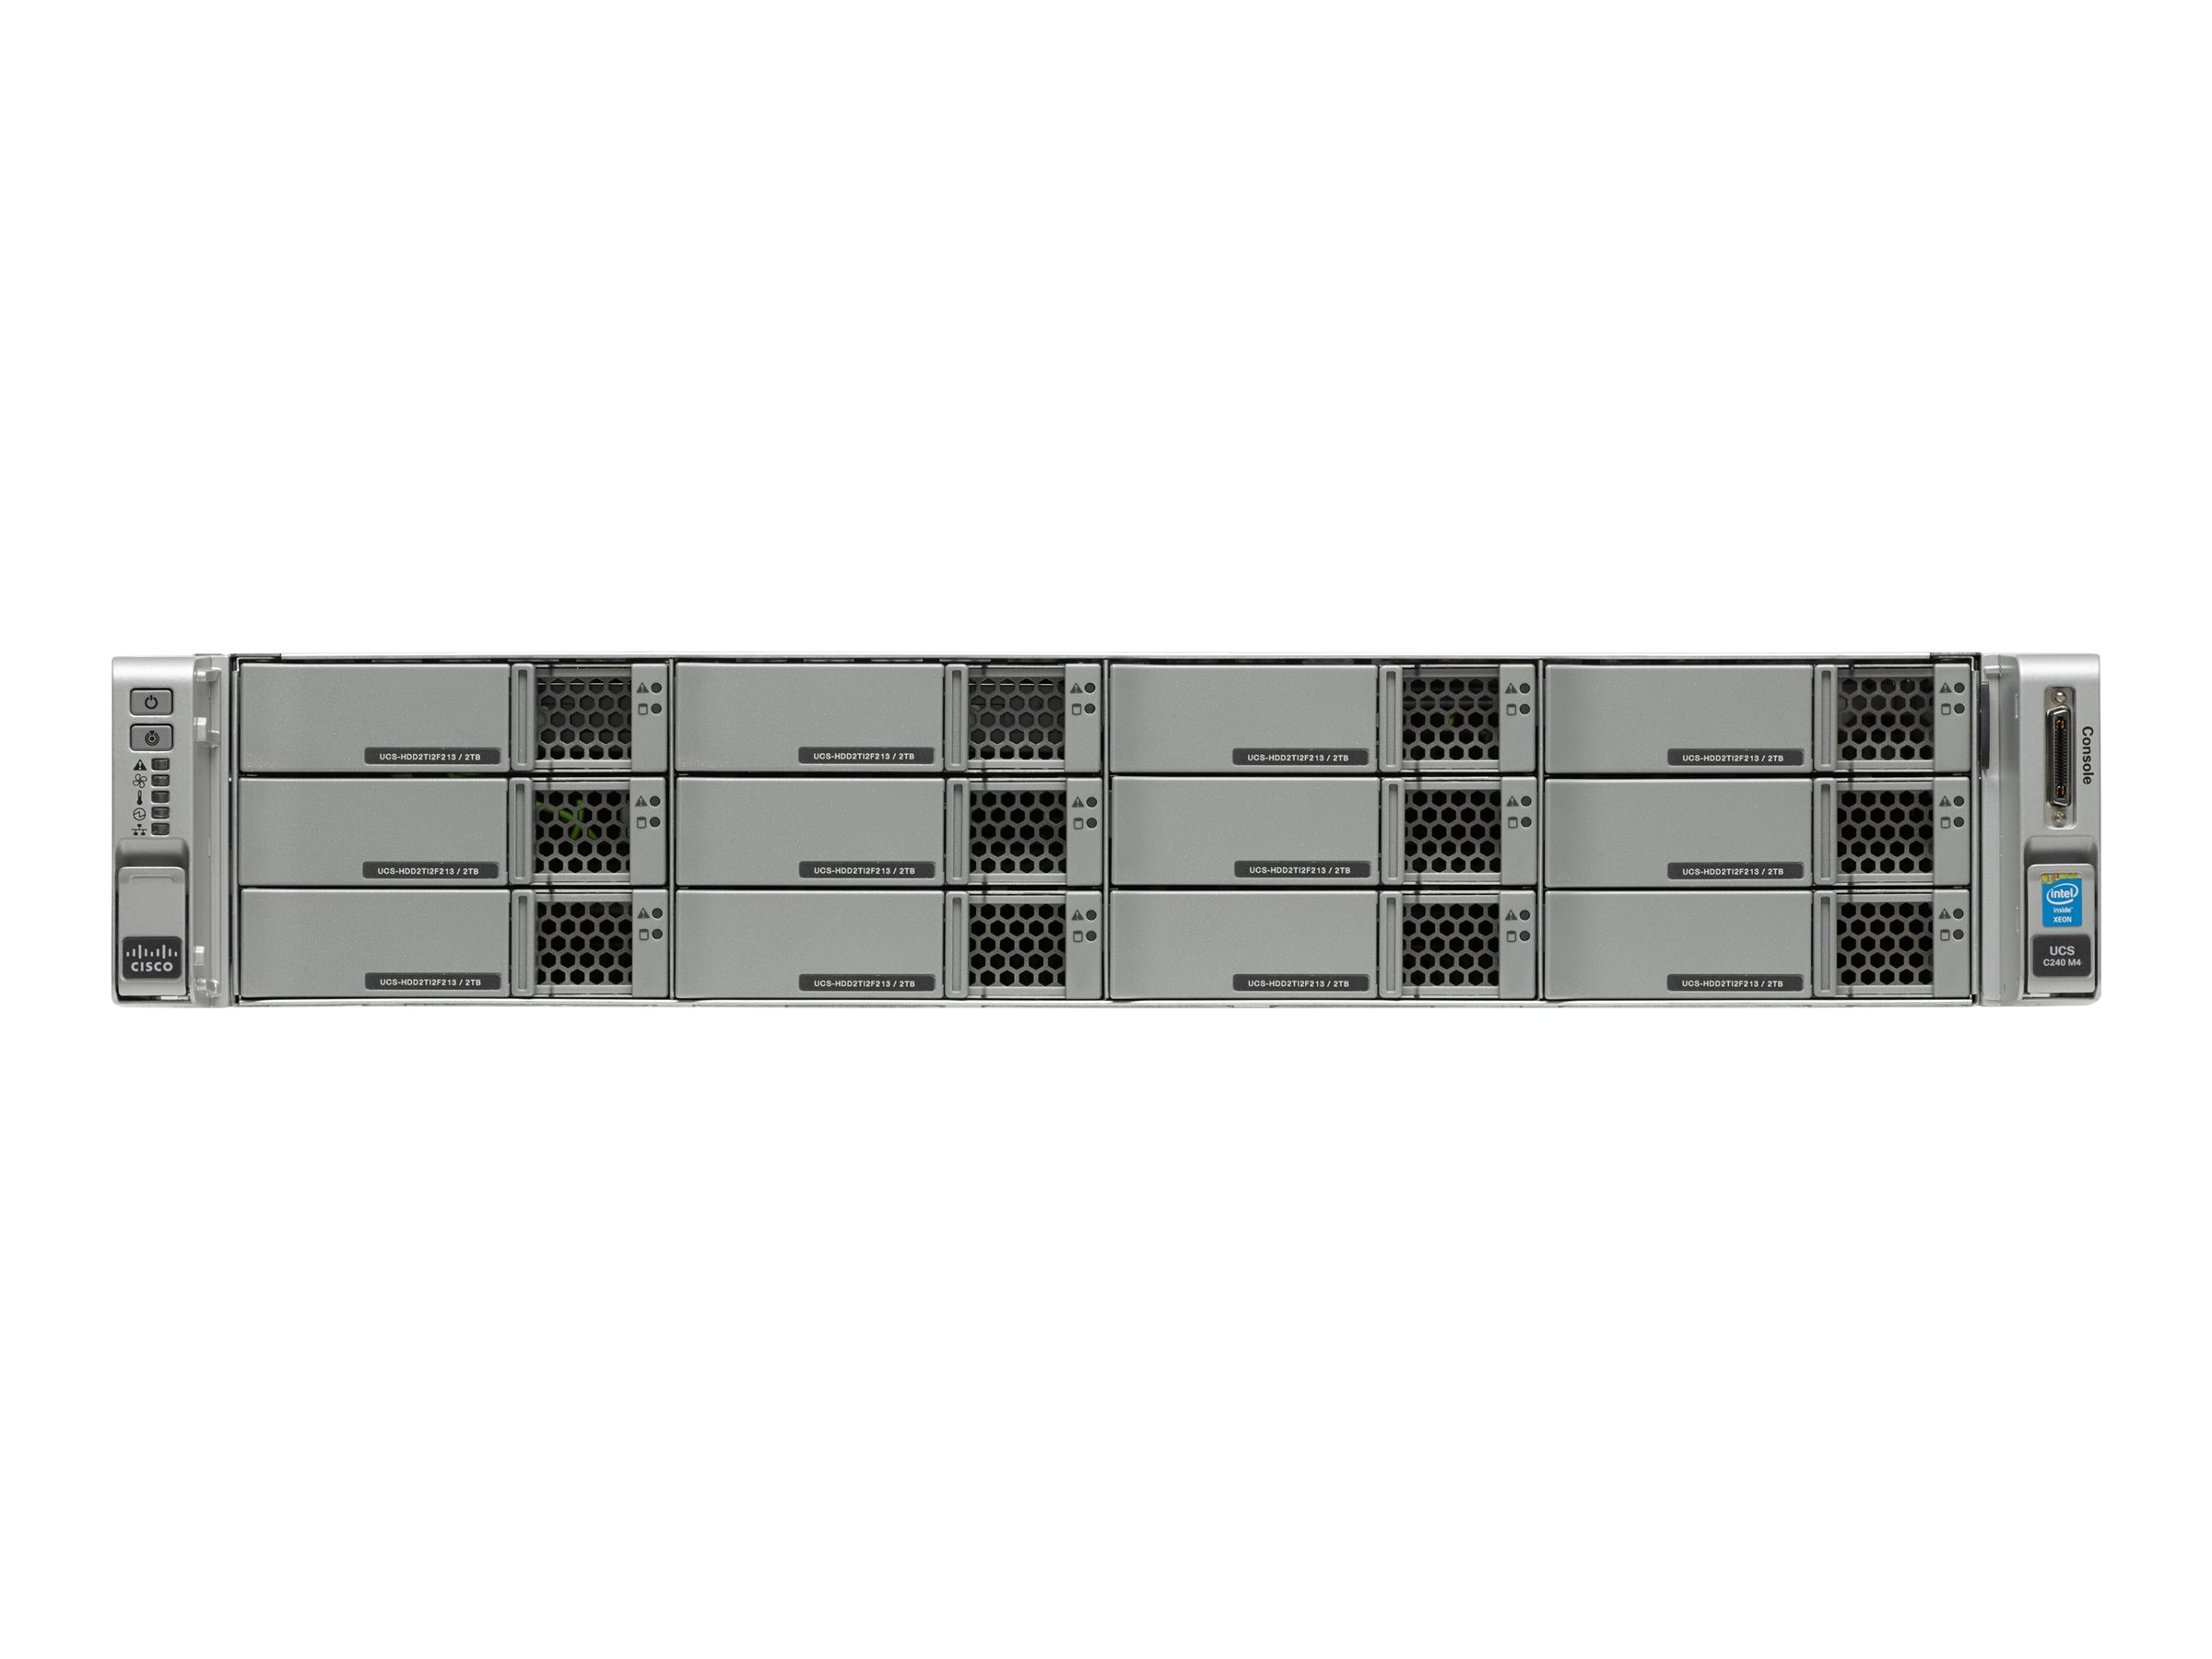 Cisco UCS-SP-C240M4L-S2 Image 3